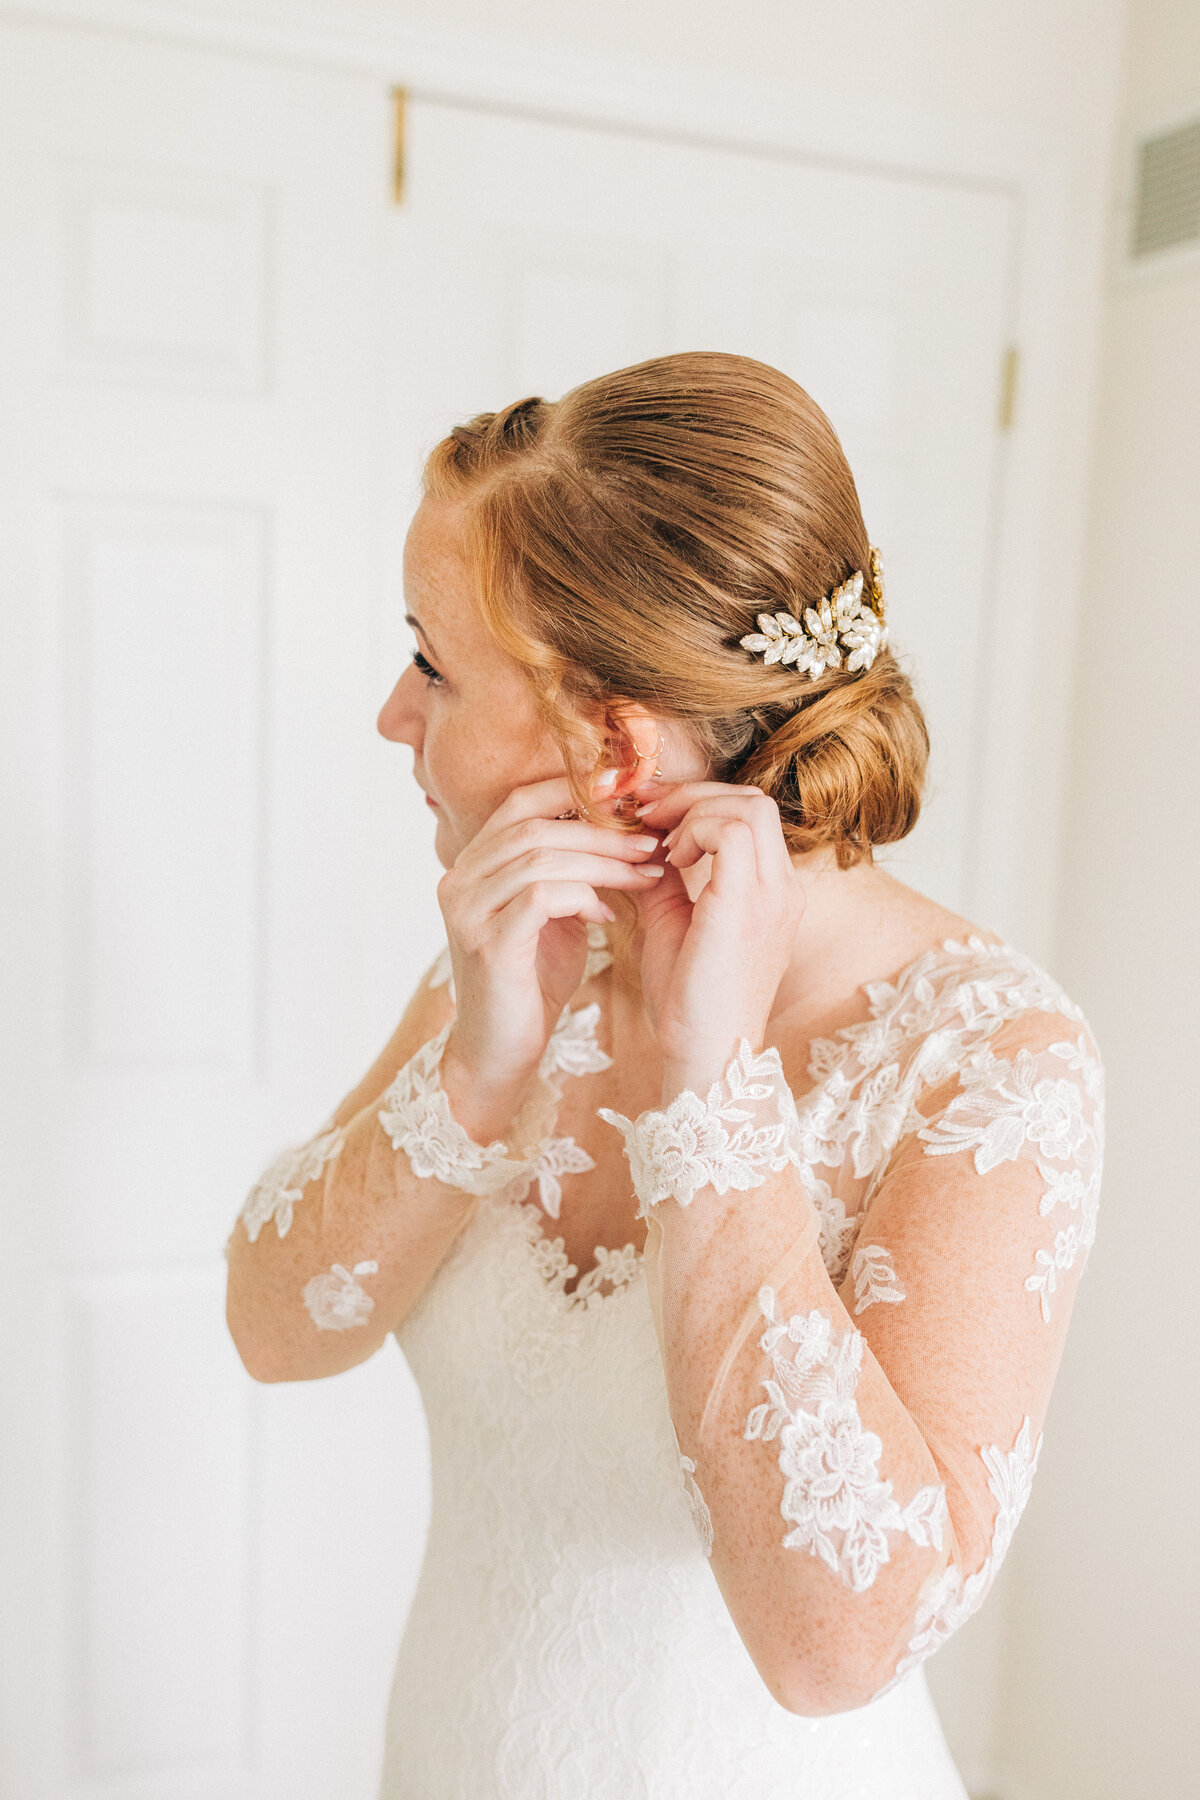 Dorothy_Louise_Photography_Sam_Nick_St_Charles_Le_Belle_Coeur_Wedding_Getting_Ready-60